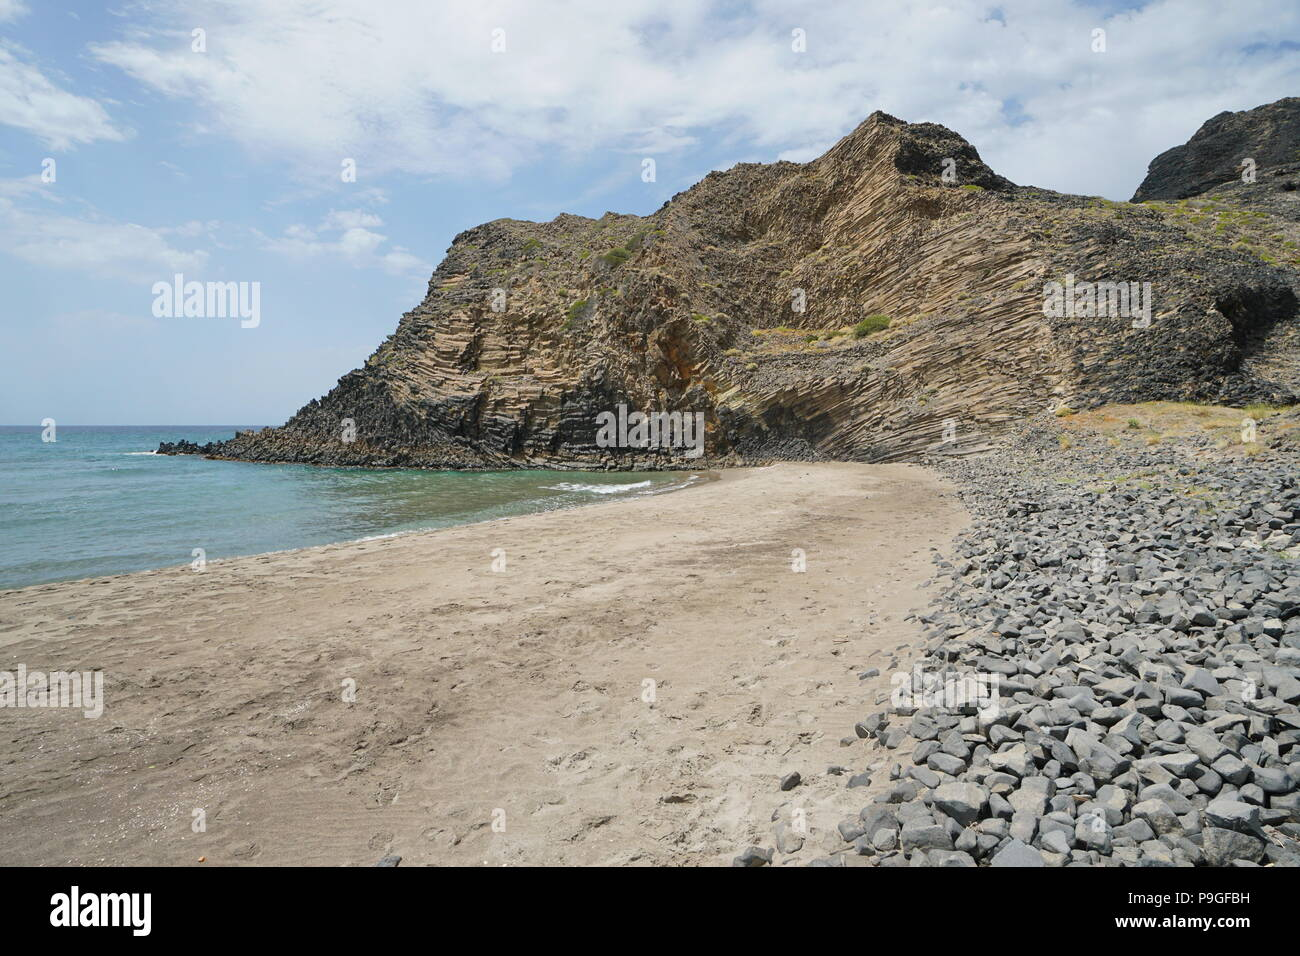 Sandy beach and volcanic rock formation on the coast in the Cabo de Gata-Níjar natural park, Mediterranean sea, Cala Grande, Almeria, Andalusia, Spain - Stock Image